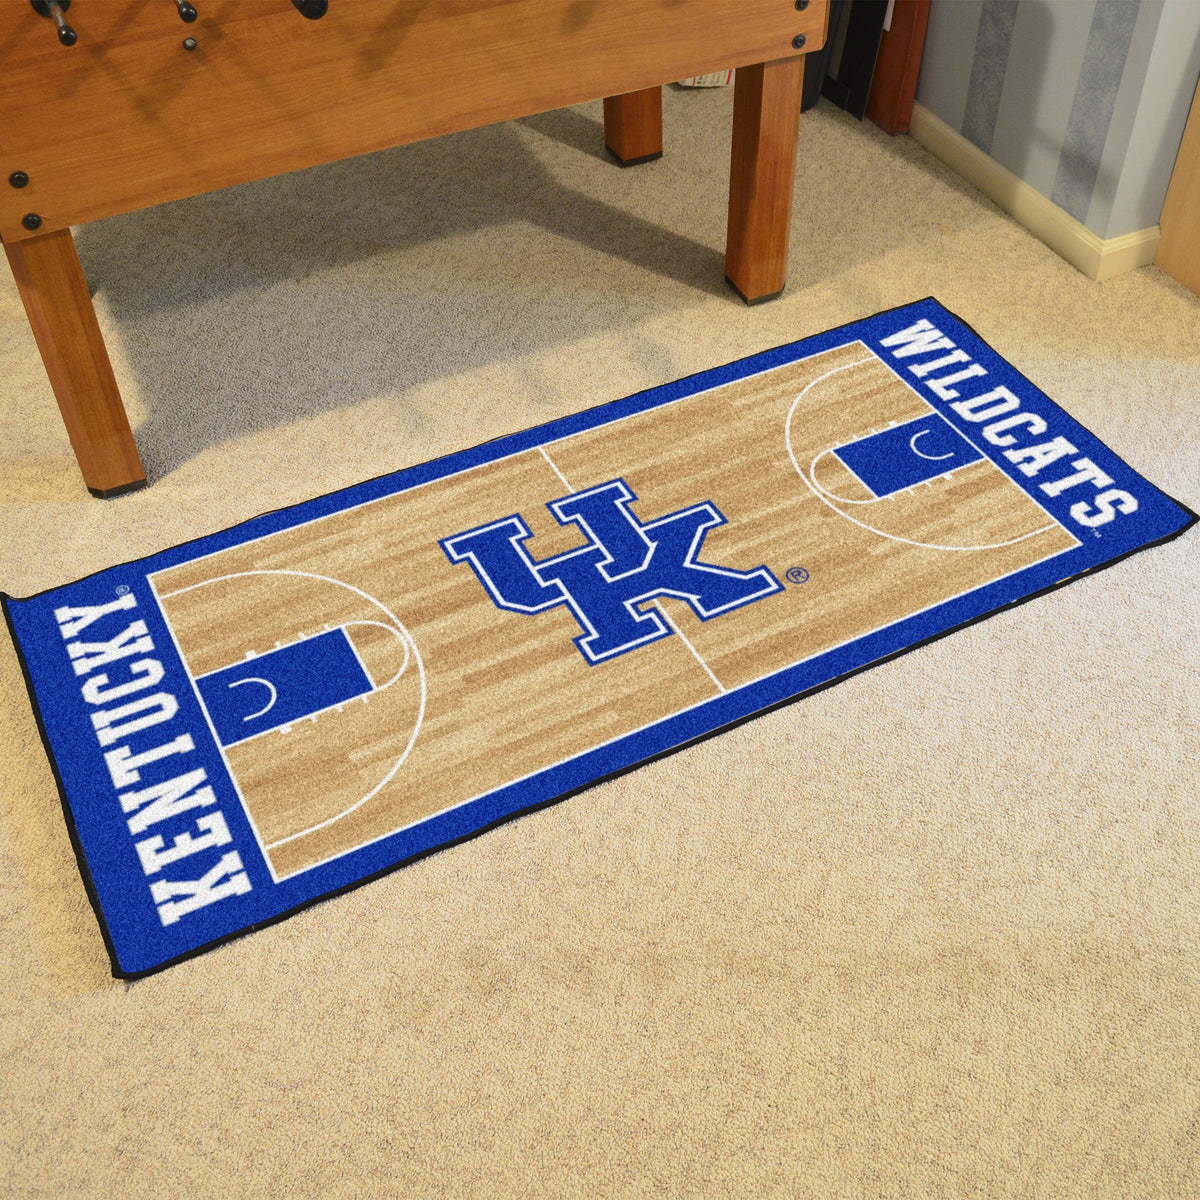 Collegiate - NCAA Basketball Runner Collegiate Mats, Rectangular Mats, NCAA Basketball Runner, Collegiate, Home Fan Mats Kentucky